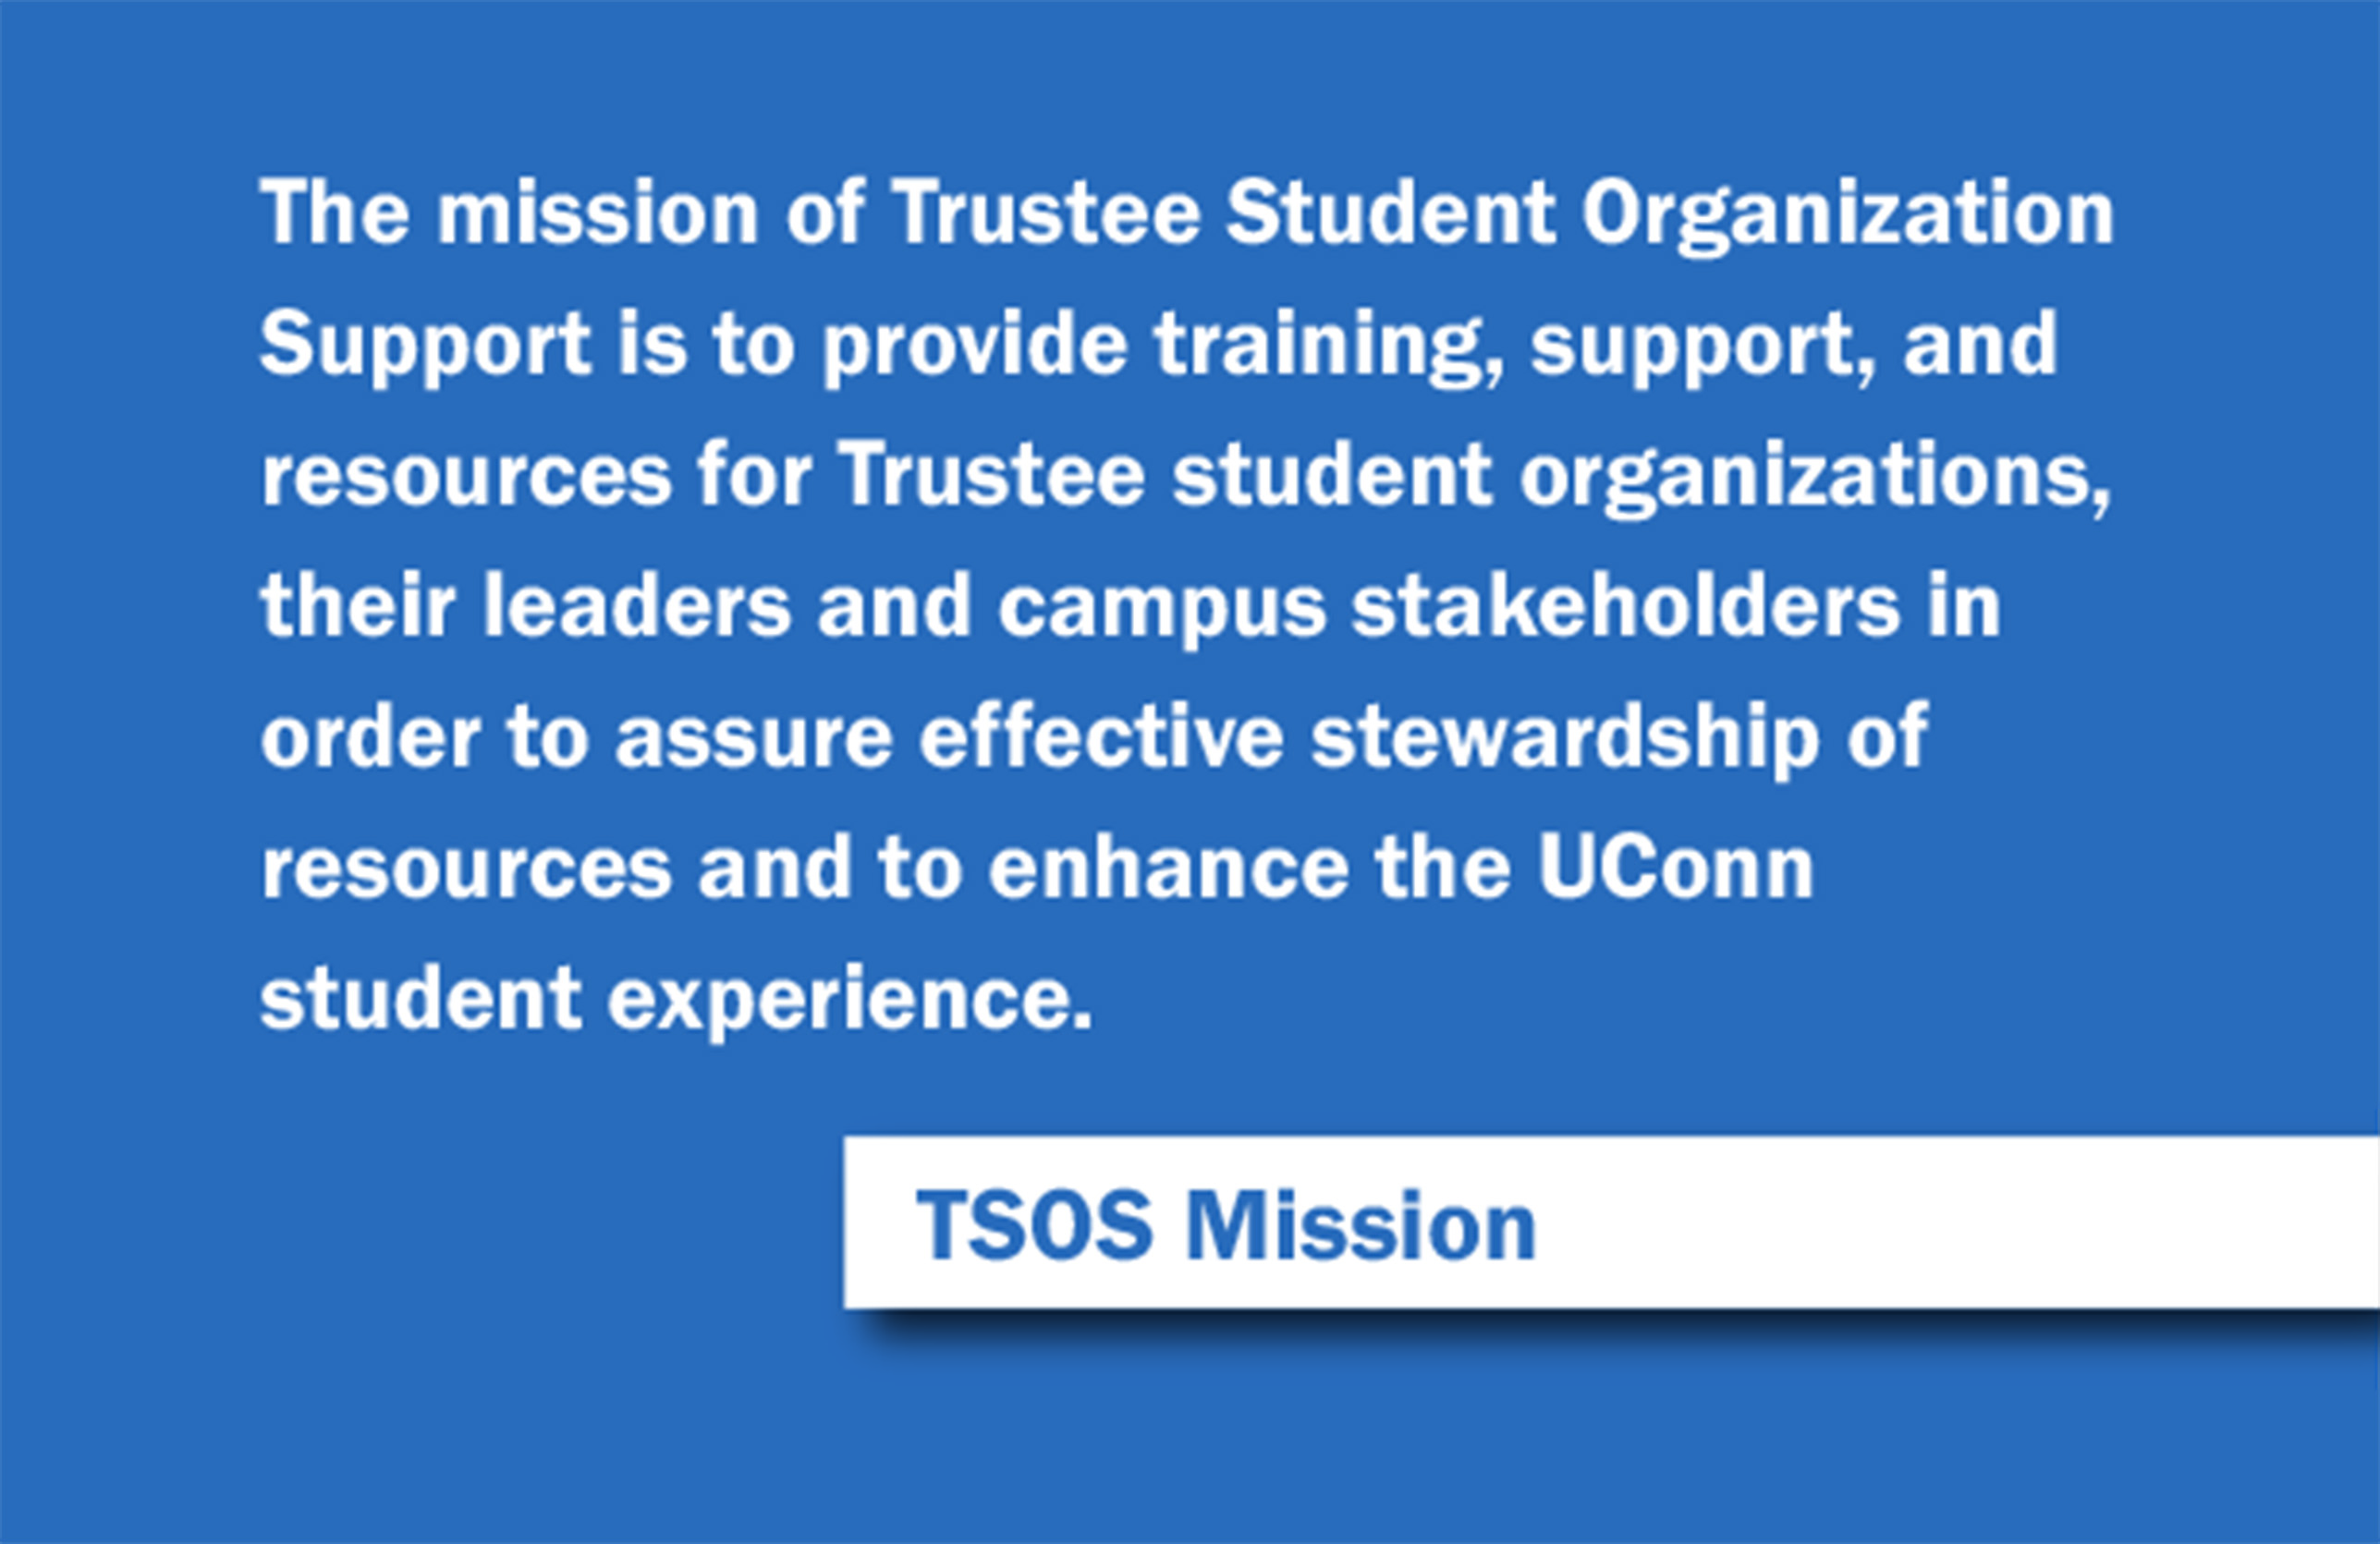 tsos mission website image